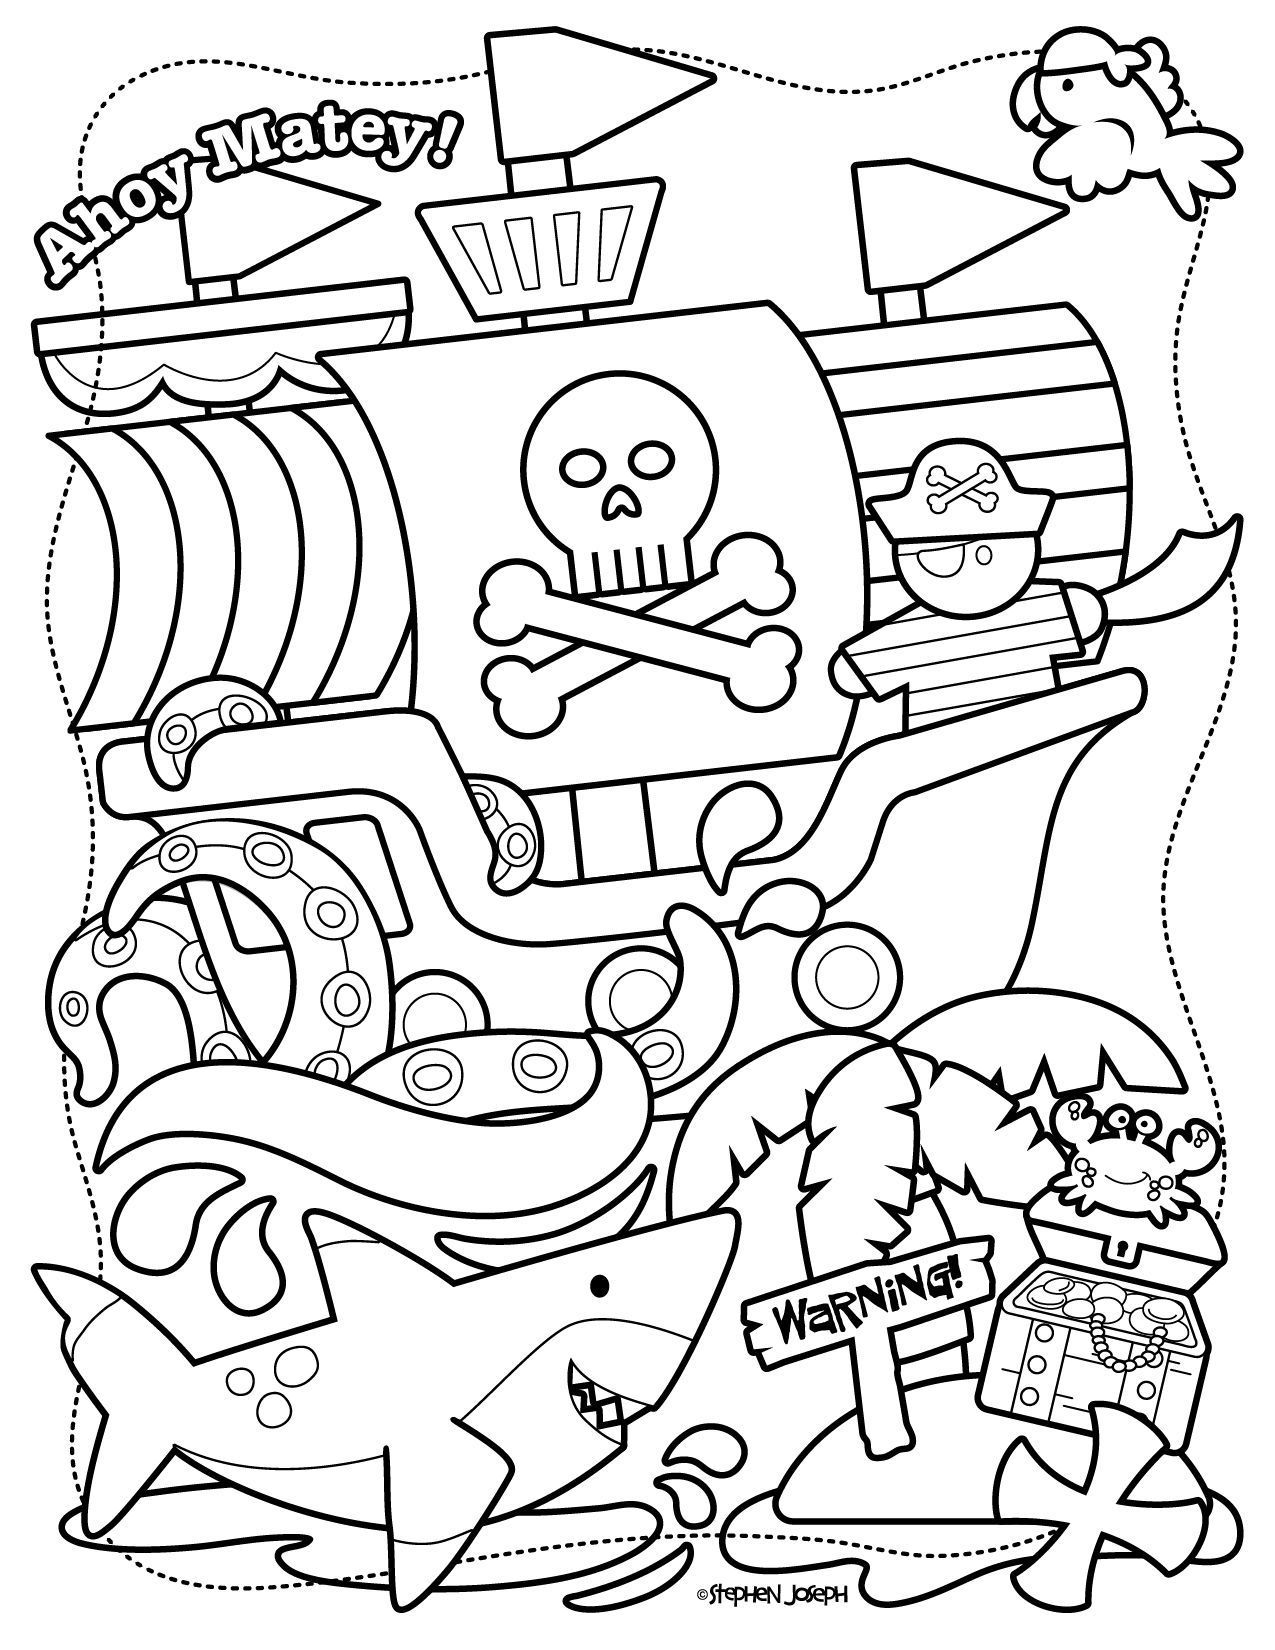 Pin By Nisreen Tahseen On Book Pirate Coloring Pages Coloring Pages Shark Coloring Pages